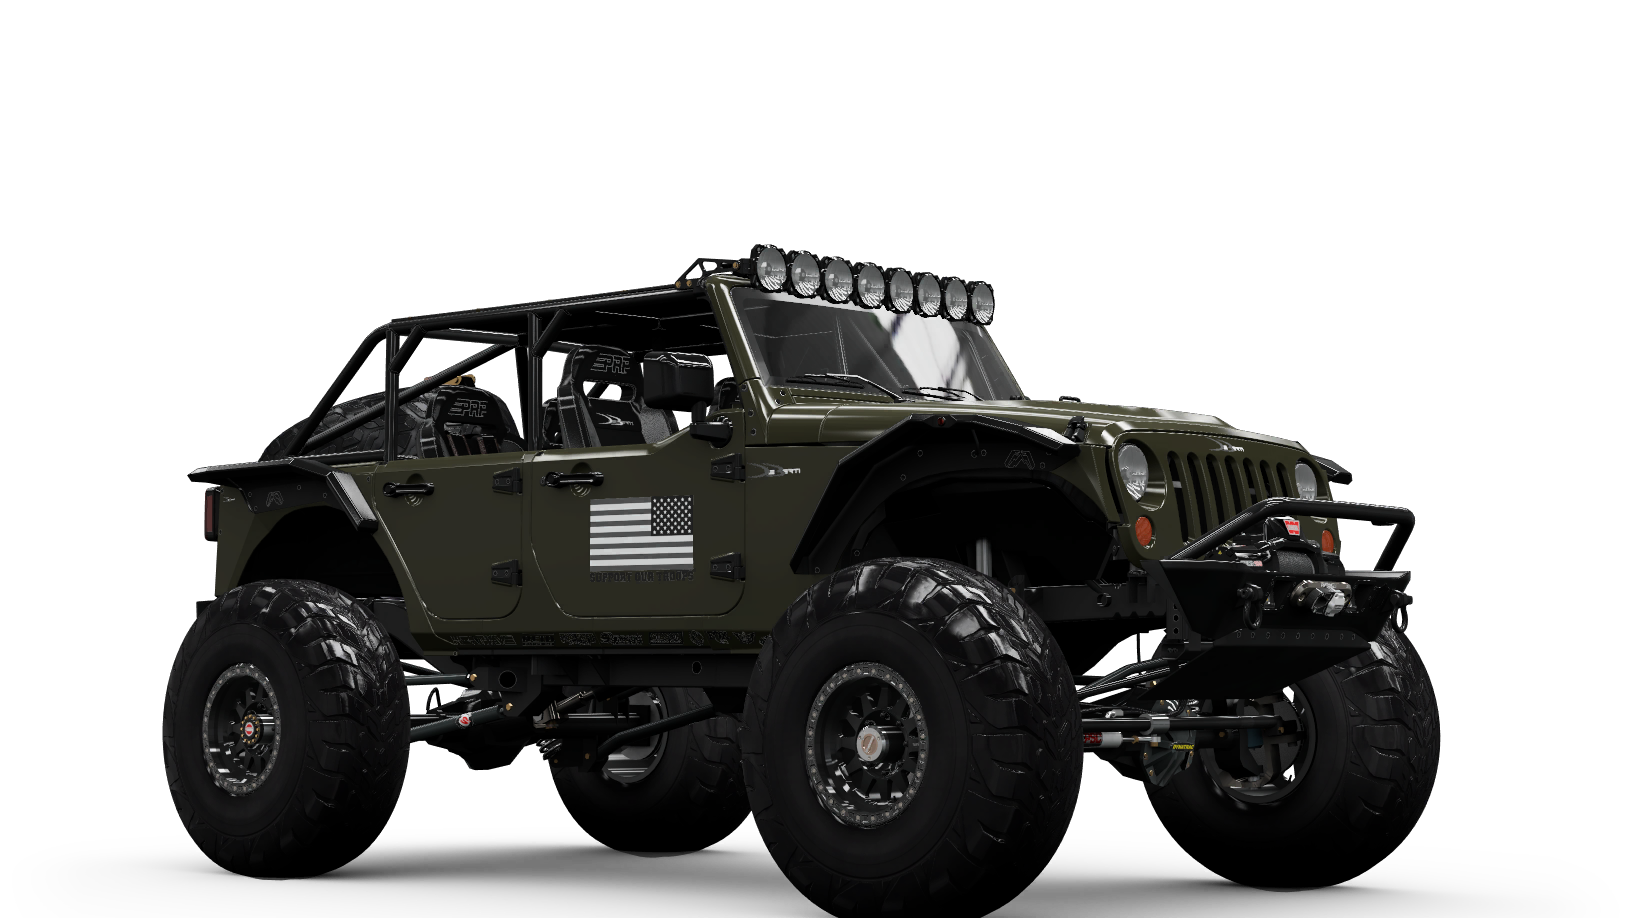 Forza-Horizon-4-Jeep-Wrangler-Unlimited-Deberti-Design-2